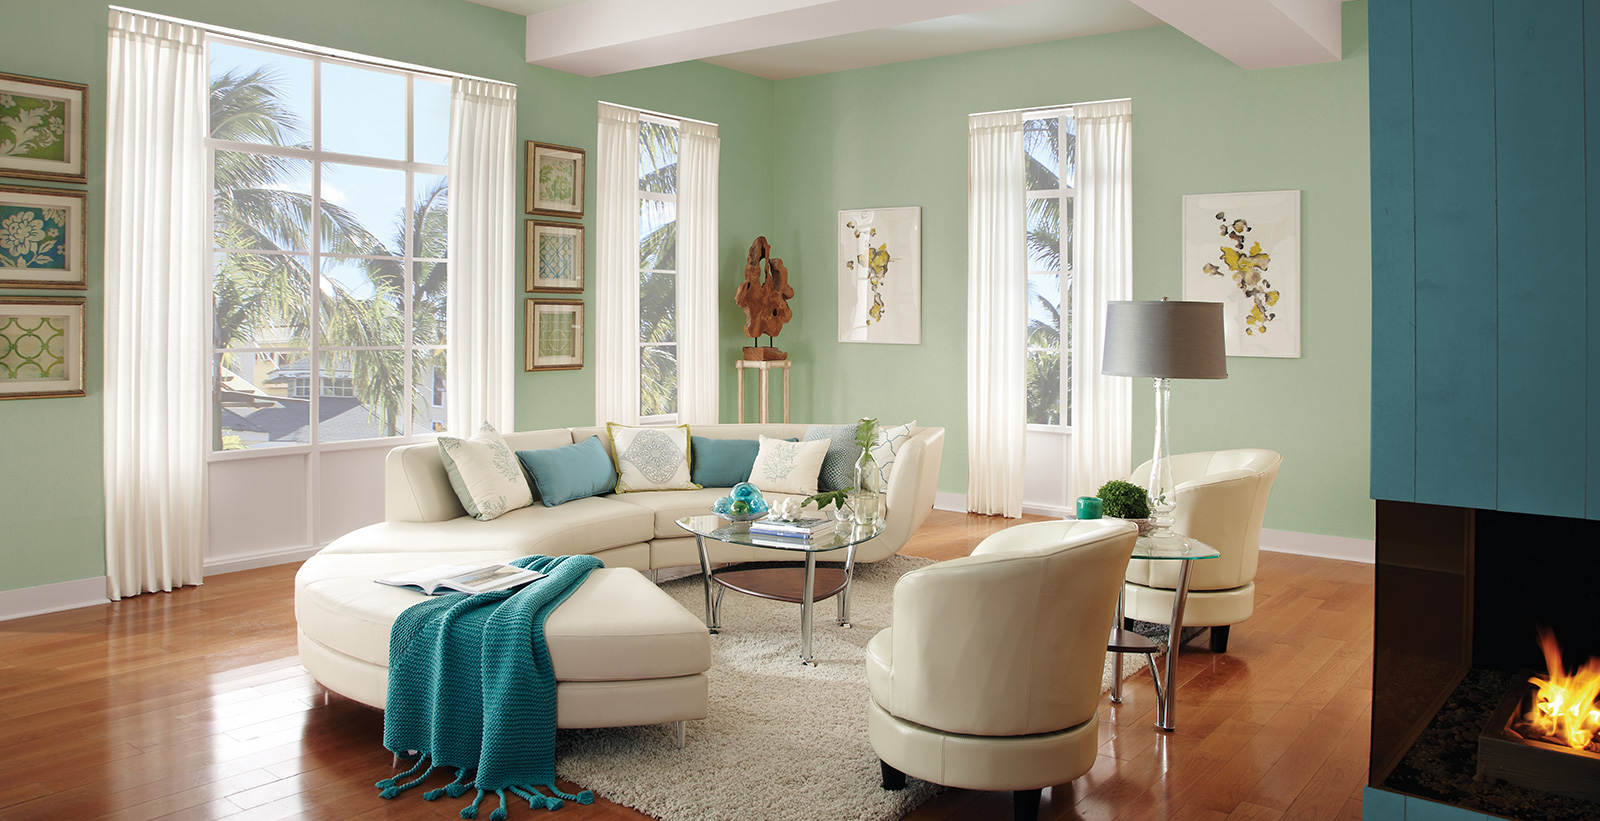 Calming Living Room Ideas and Inspirational Paint Colors | Behr